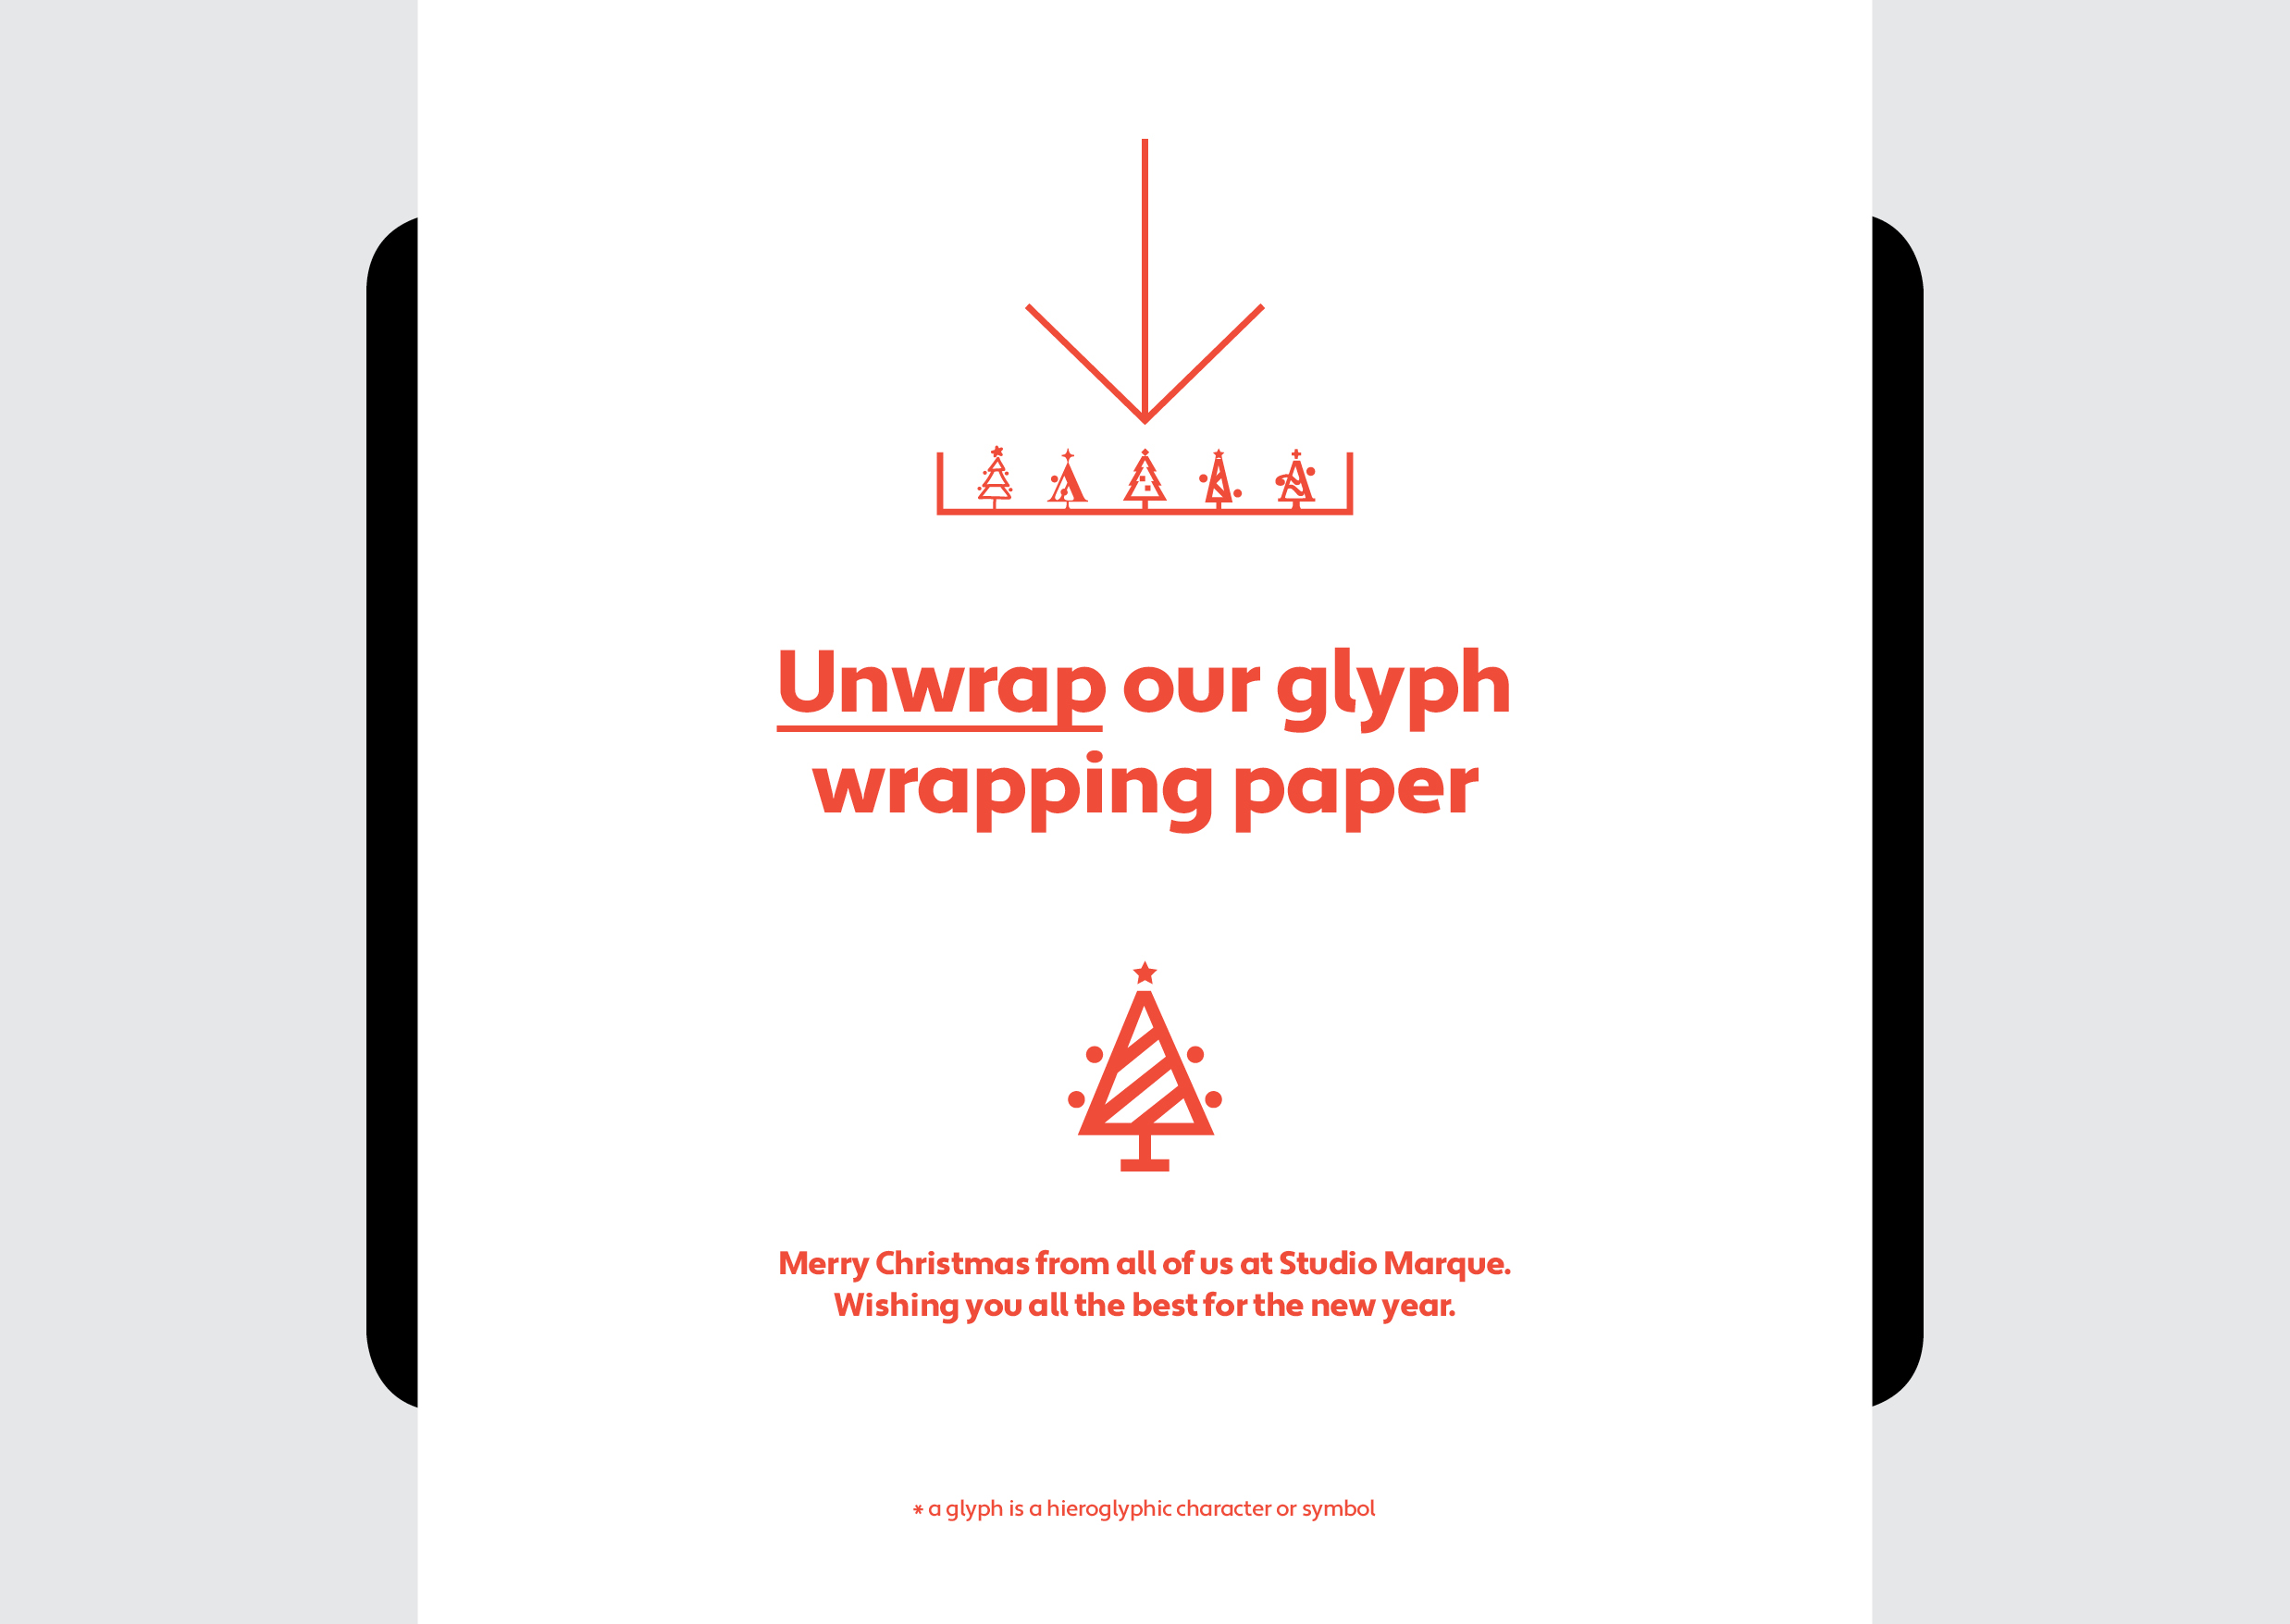 Unwrap our glyph wrapping paper